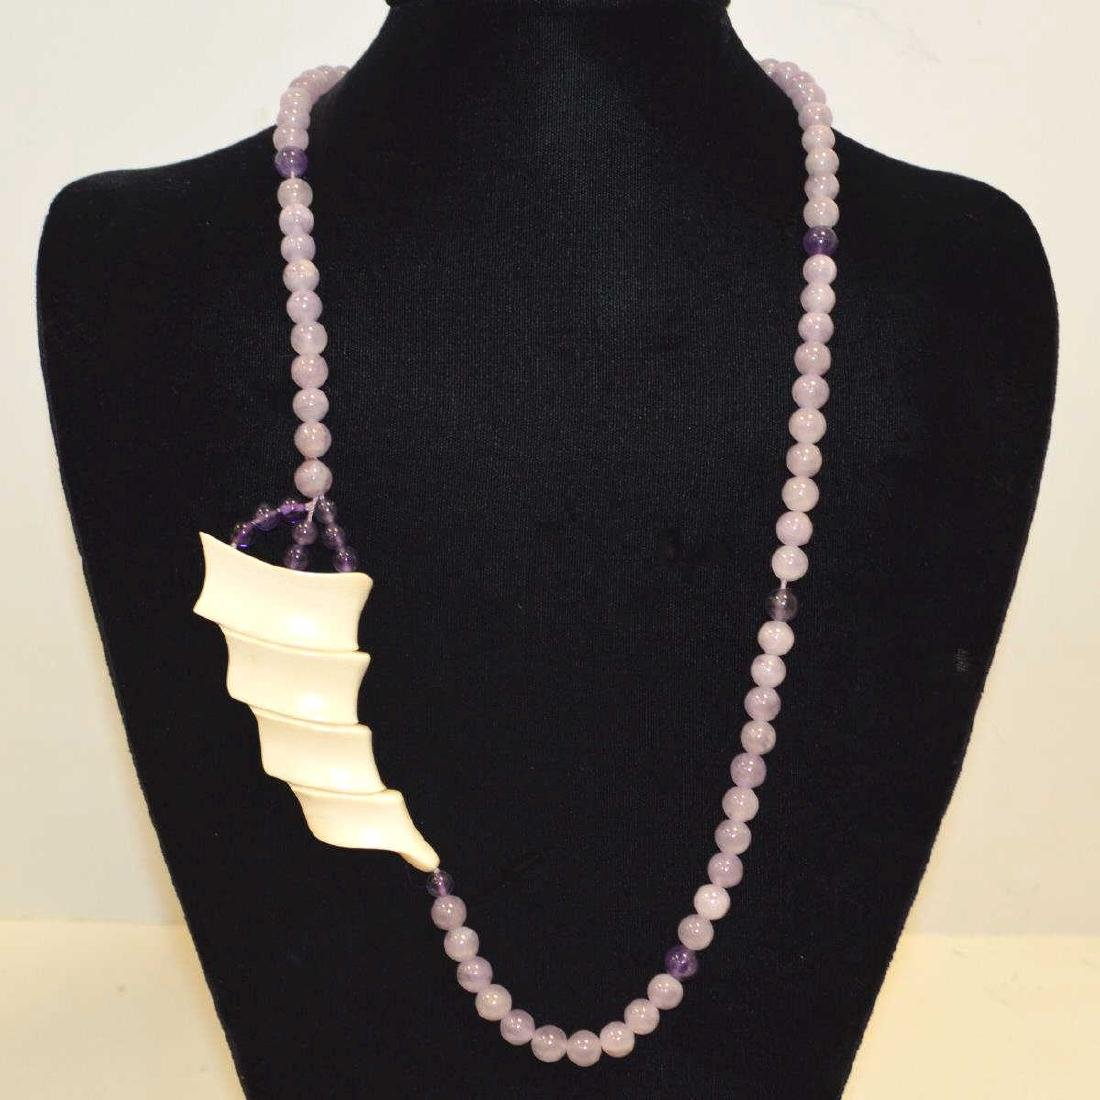 Amethyst and Ivory necklace and earrings - 2